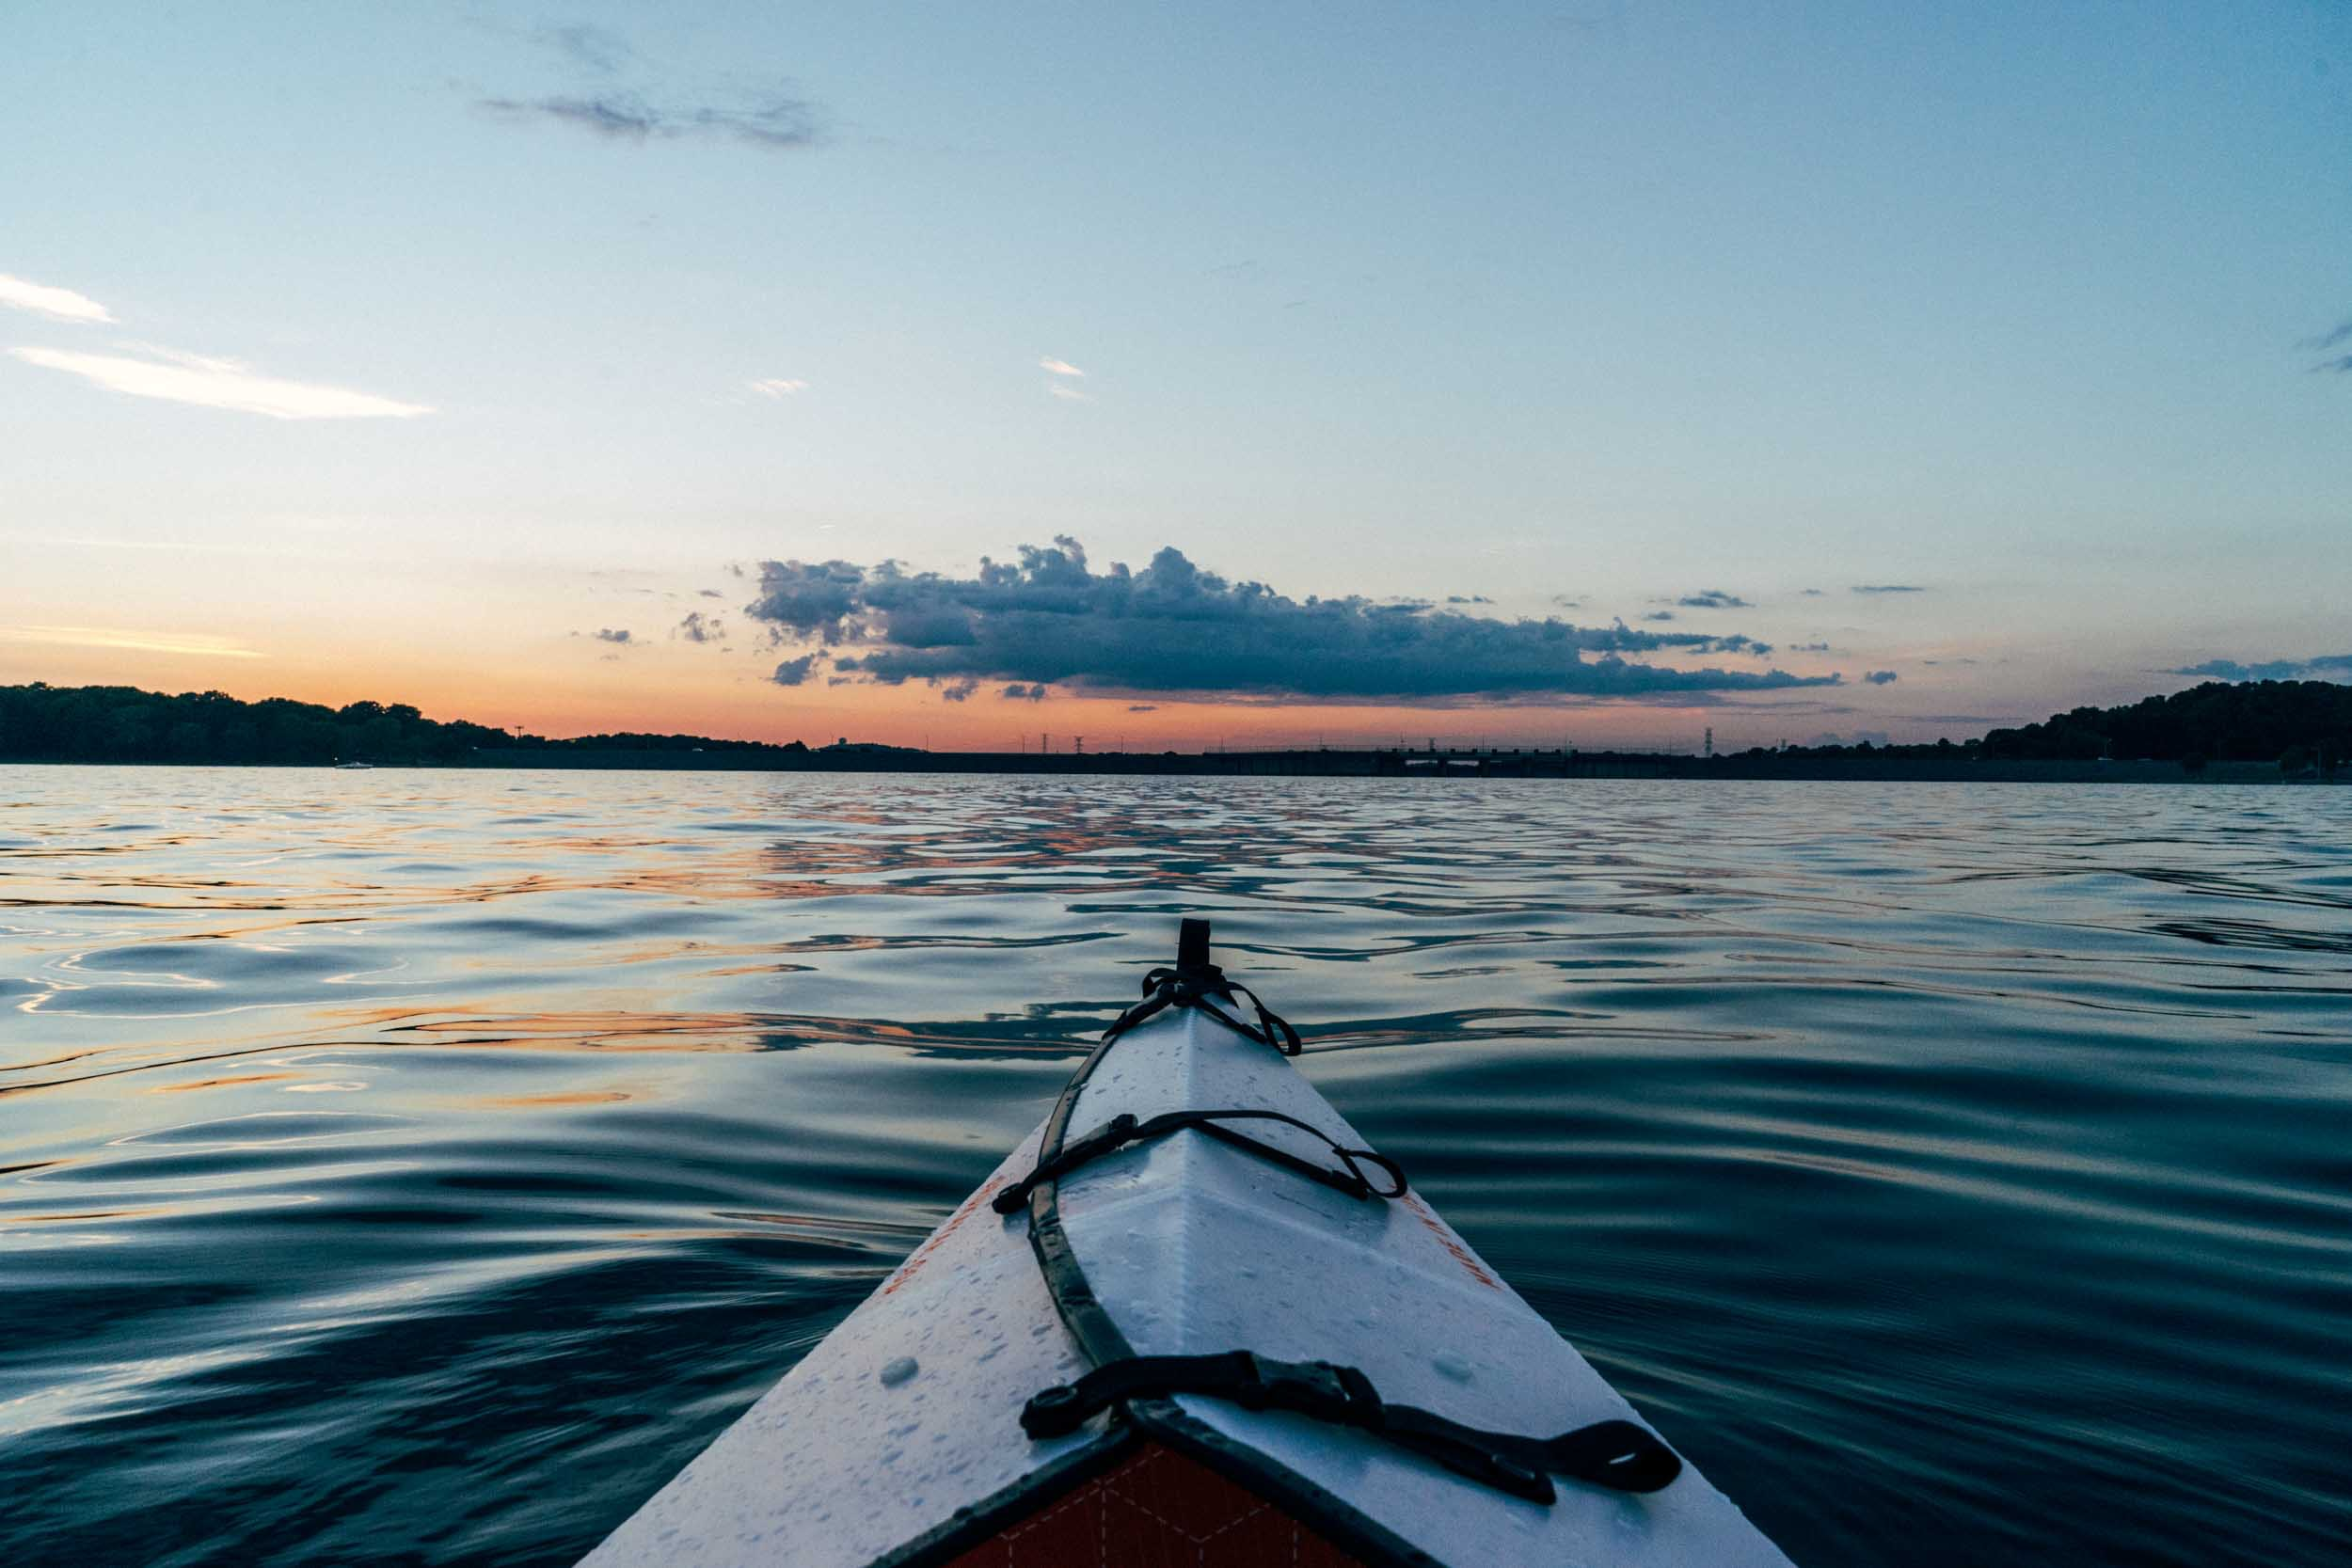 A perspective shot from a kayak on a rippling lake with the sun setting on the horizon in the distance